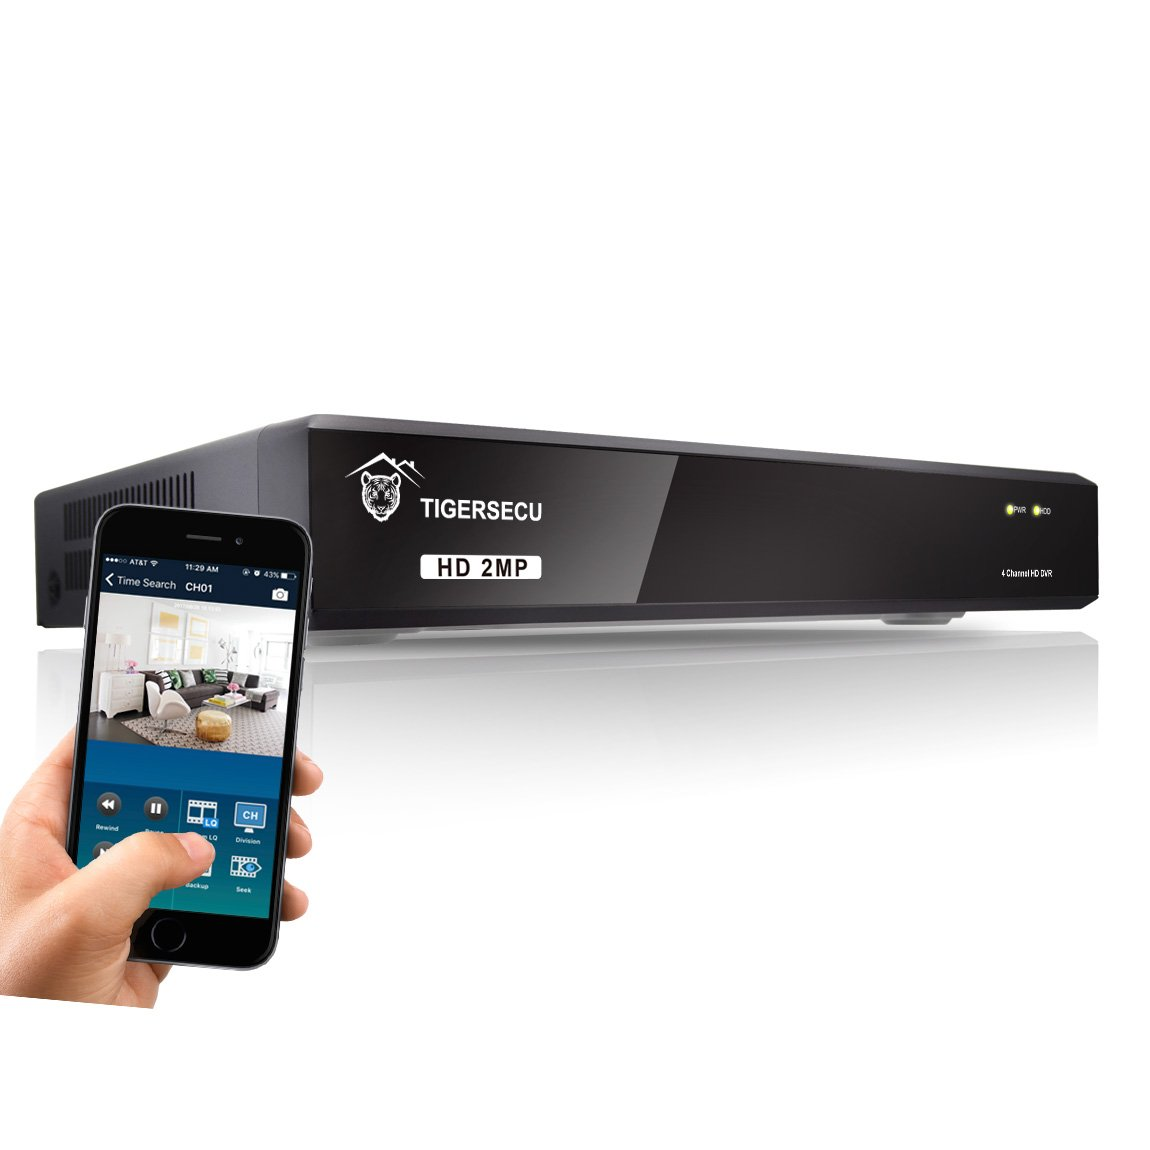 TIGERSECU Super HD 1080P 4-Channel DVR Video Security Recording System (Cameras and Hard Drive Not Included)